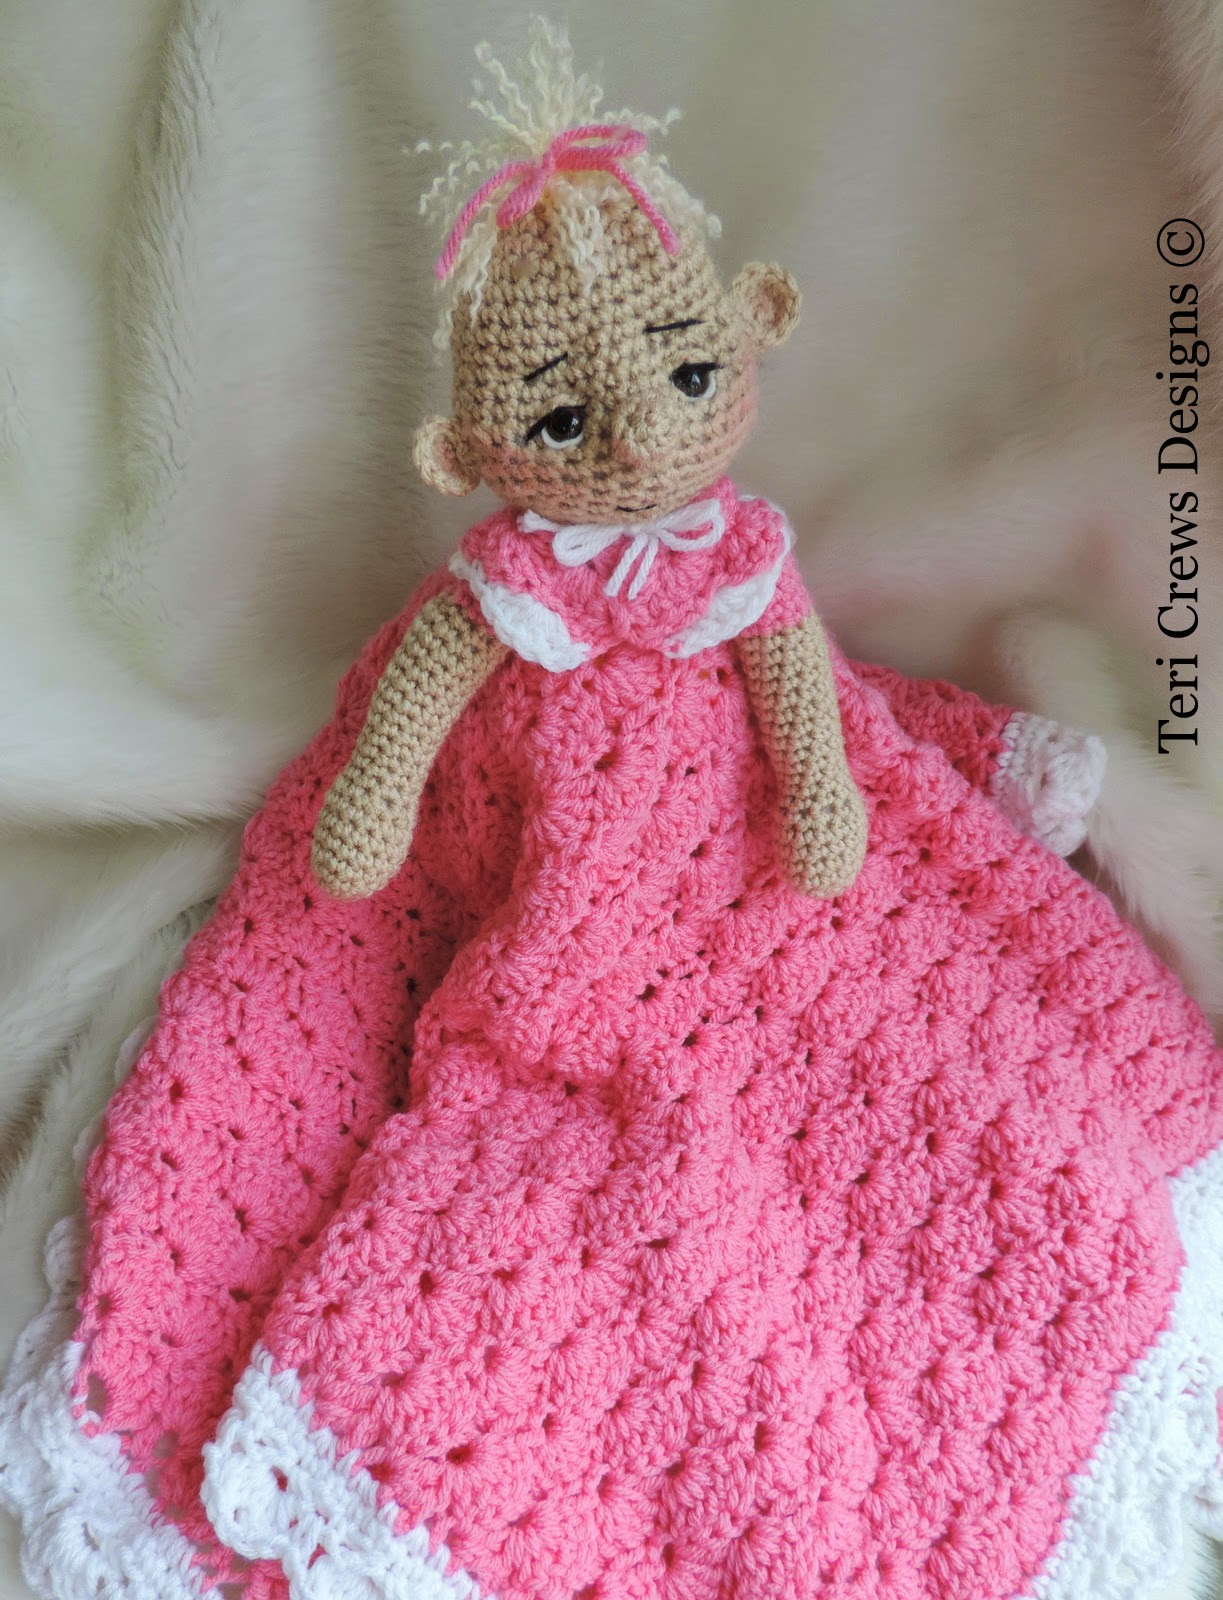 Free Crochet Pattern Huggy Blanket : Teris Blog: New Dolly Huggy Blanket Pattern